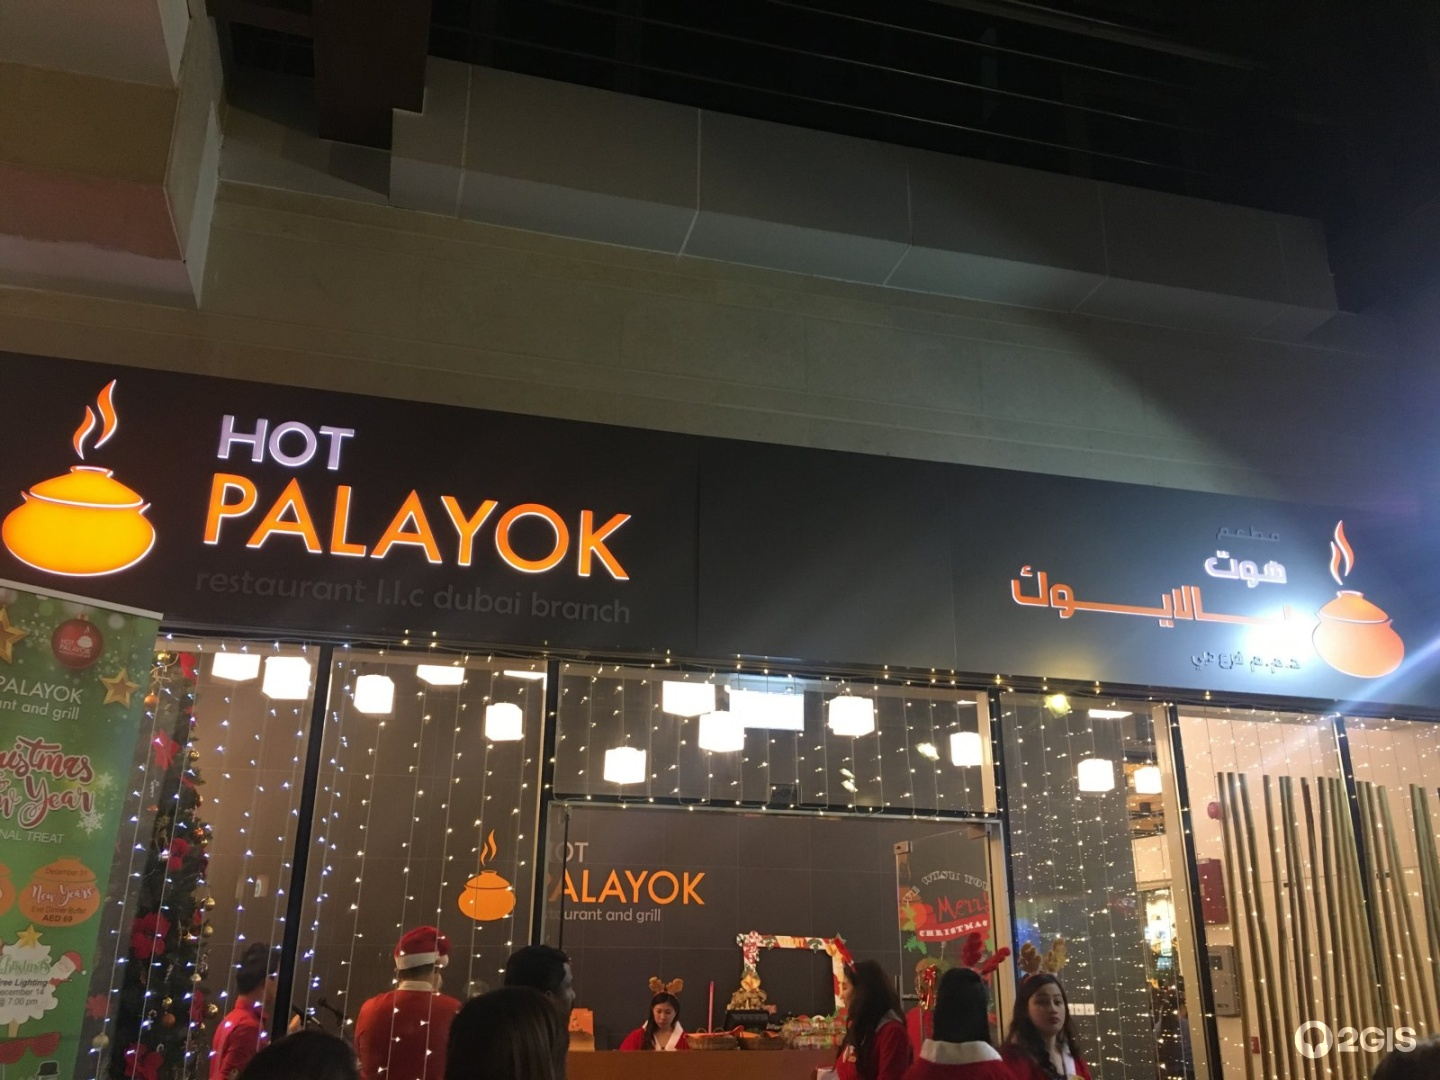 Magnificent Hot Palayok Restaurant Al Wasl Hub Block 4 15 41 Street Download Free Architecture Designs Scobabritishbridgeorg